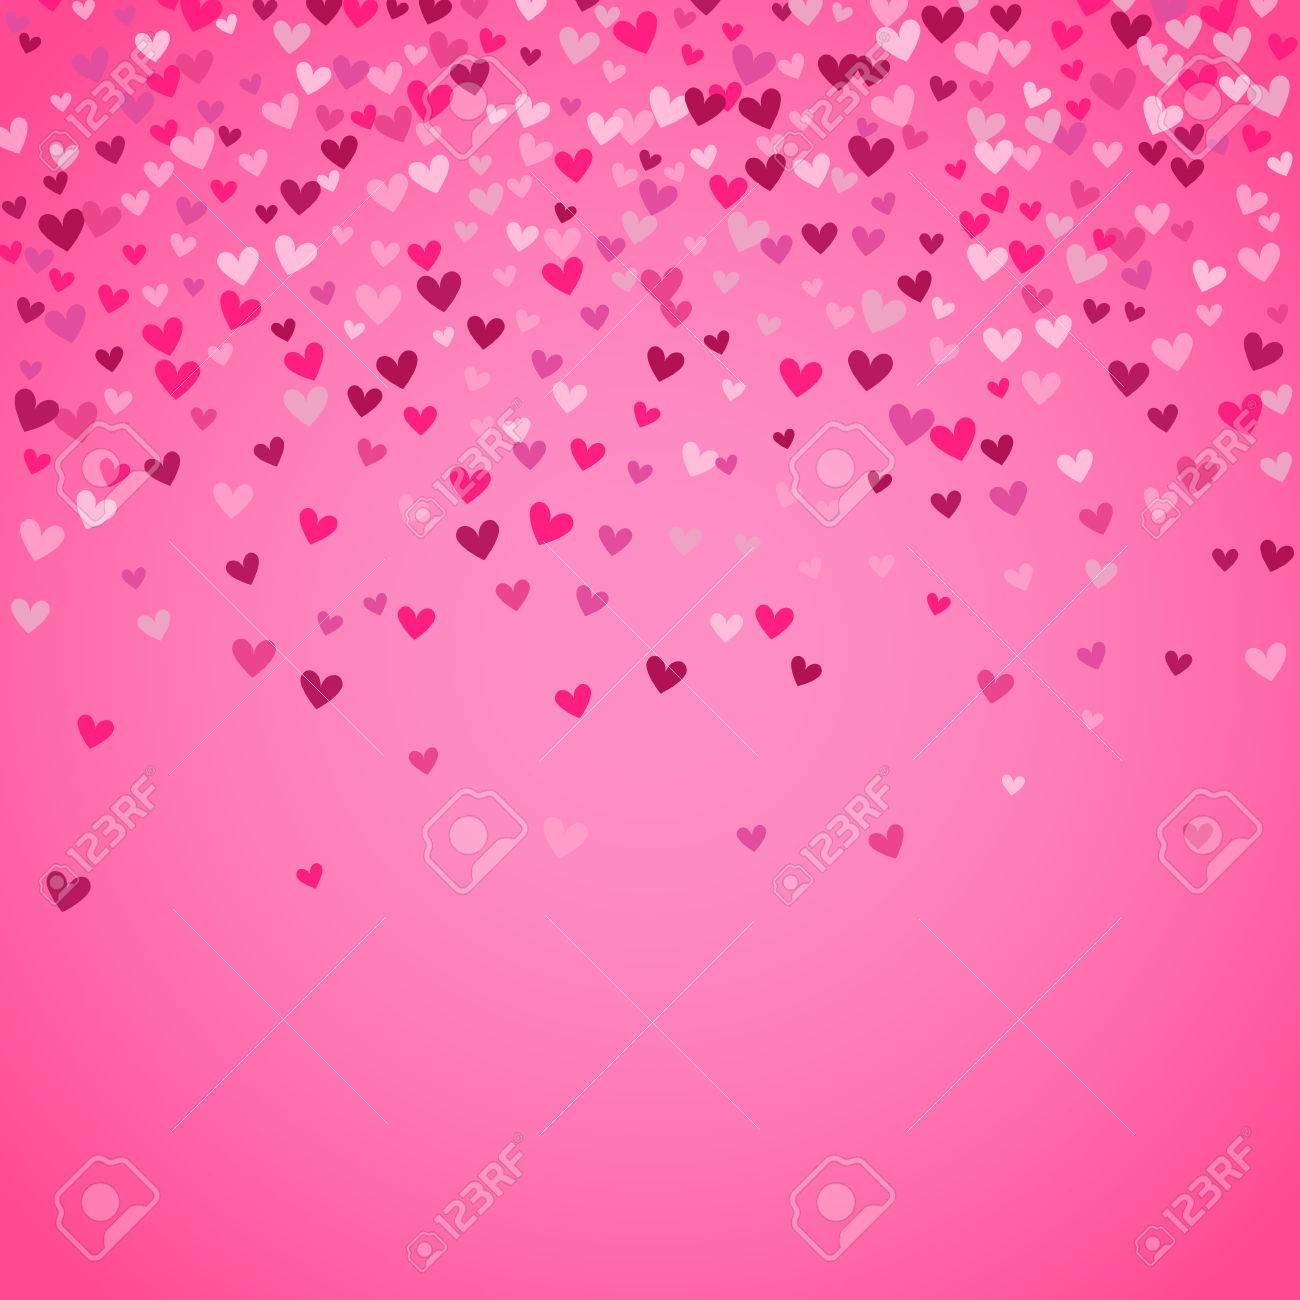 Romantic pink heart background. illustration for holiday design. Many flying hearts on pink background. For wedding card, valentine day greetings, lovely frame. - 56647267